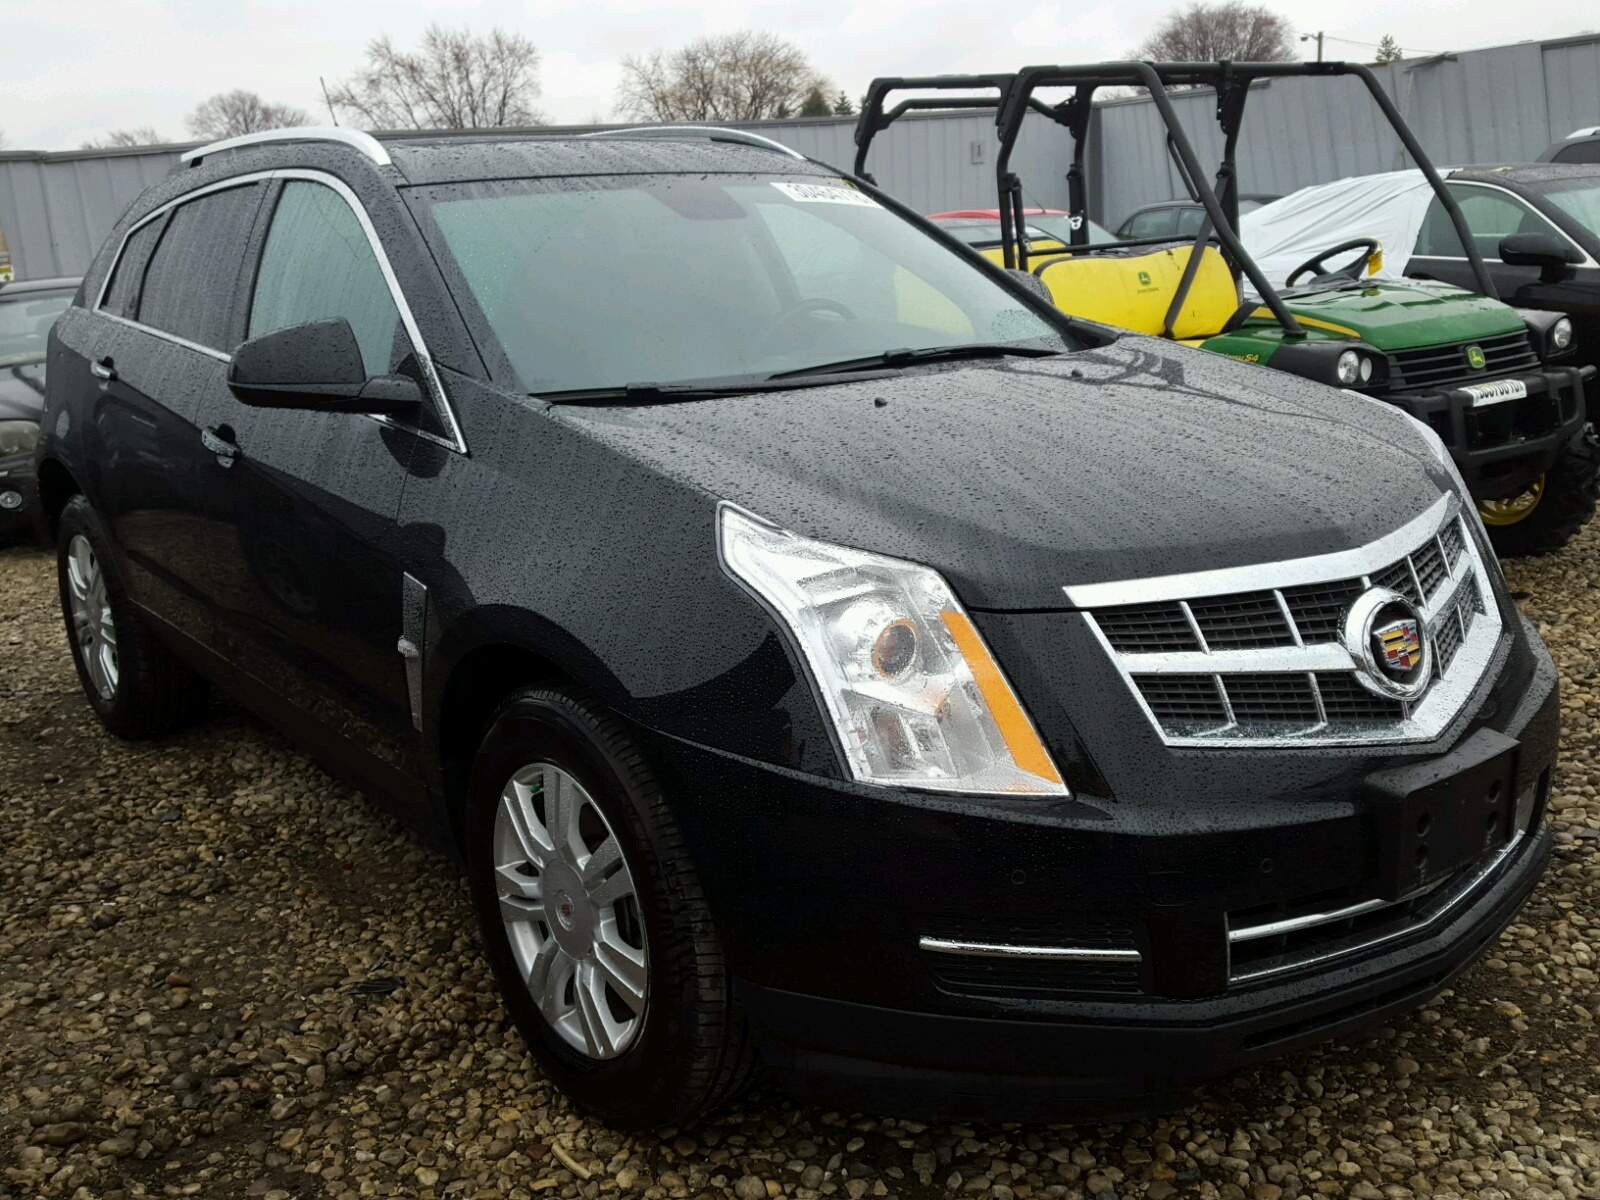 cadillac used springs srx co for htm sale collection premium c l colorado in